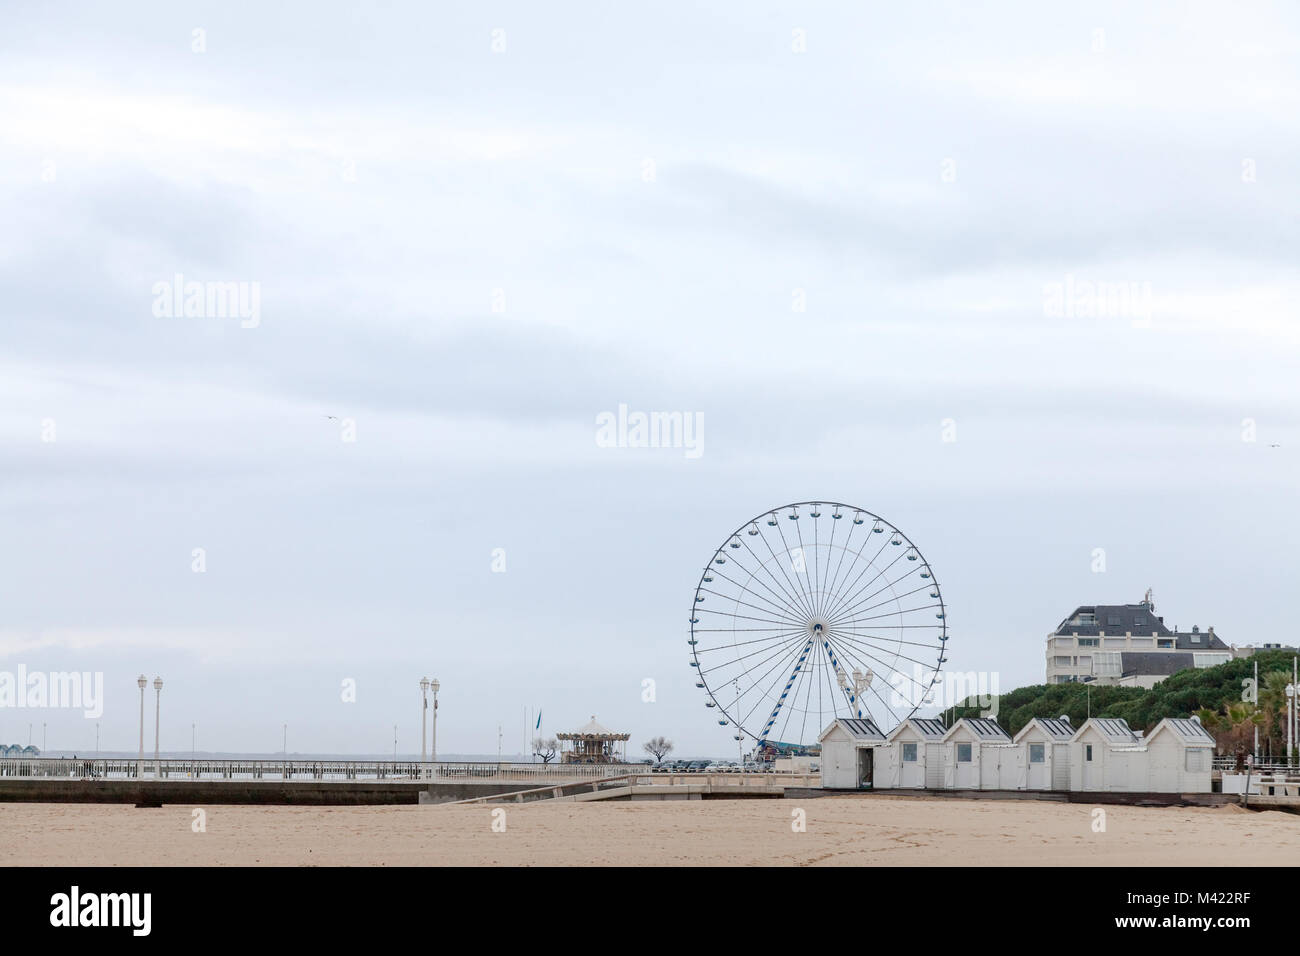 Arcachon ferris wheel on the main pier (Jetee) during a cloudy winter afternoon. The beach and some merchants huts - Stock Image